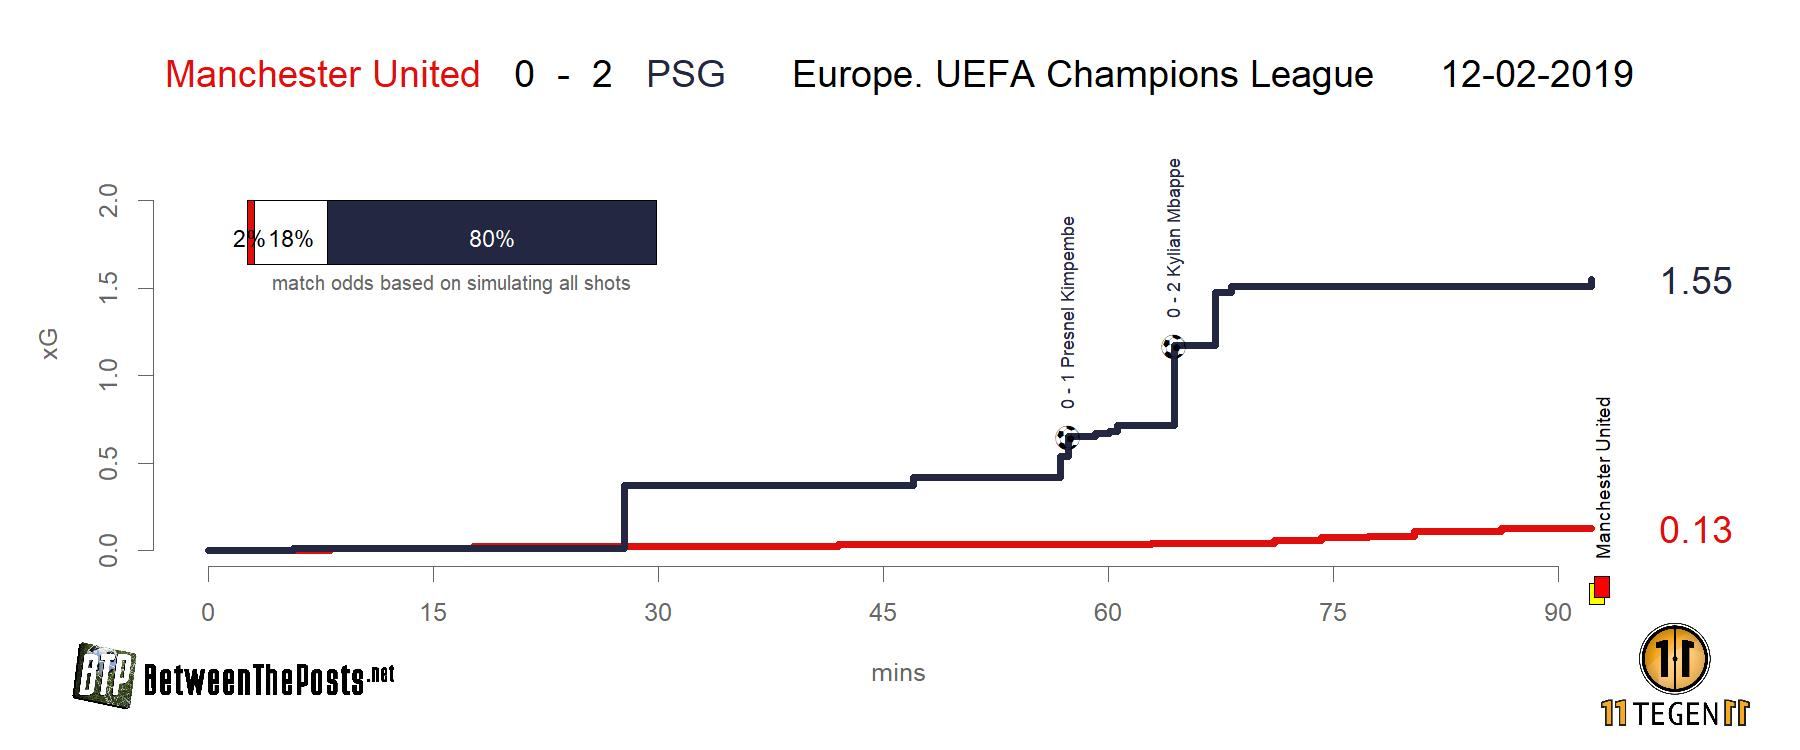 Expected goals plot Manchester United - PSG Champions League 0-2